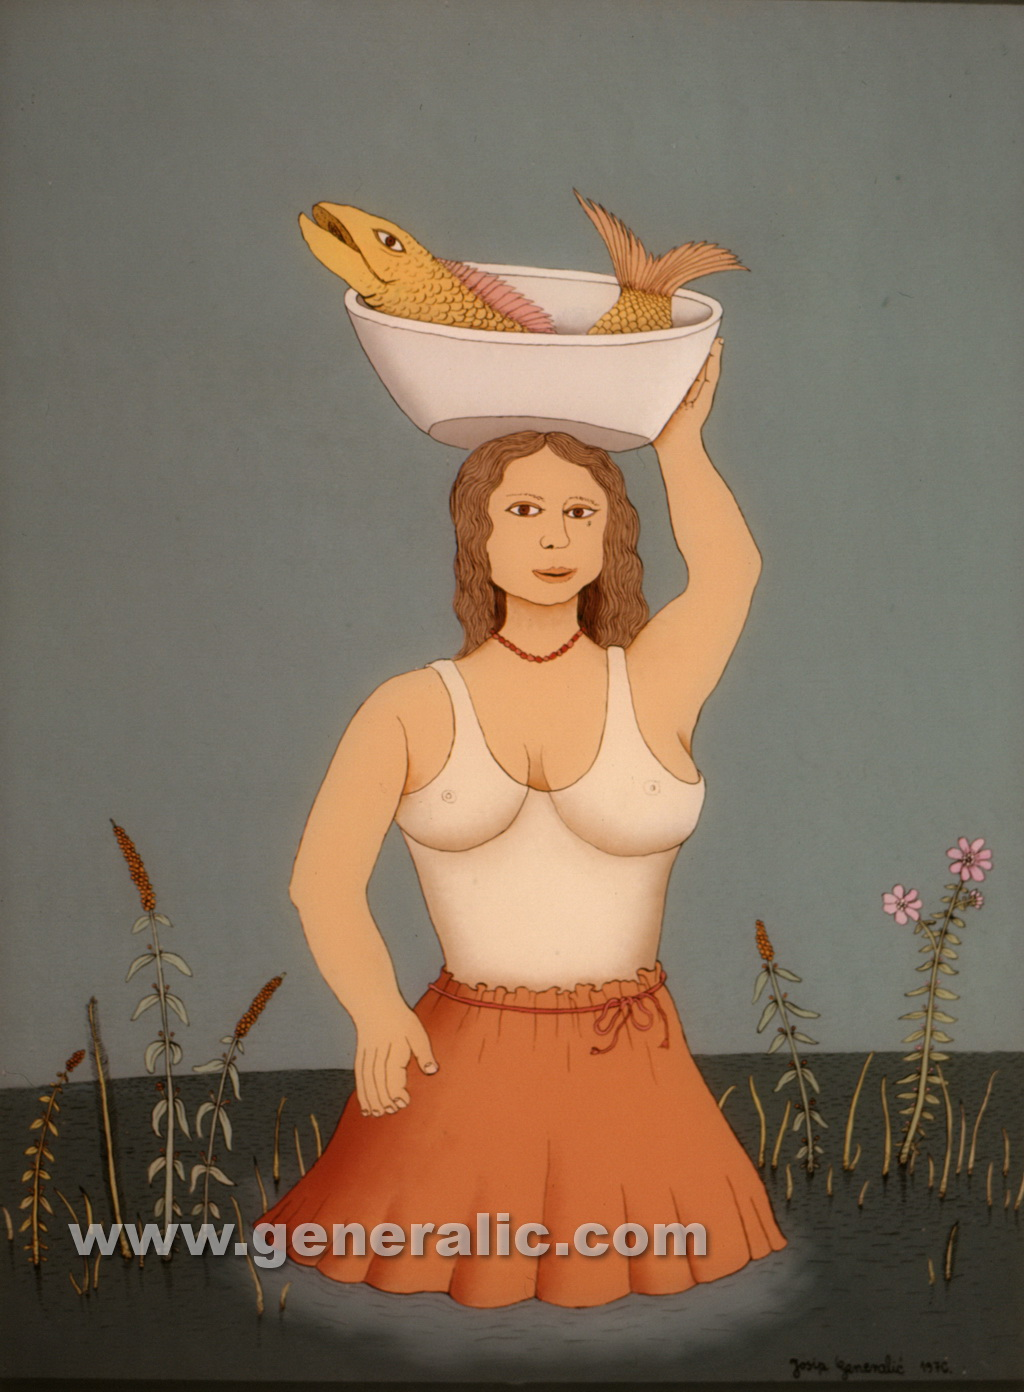 Josip Generalic, 1976, Woman with a fish, oil on glass, 73x46 cm